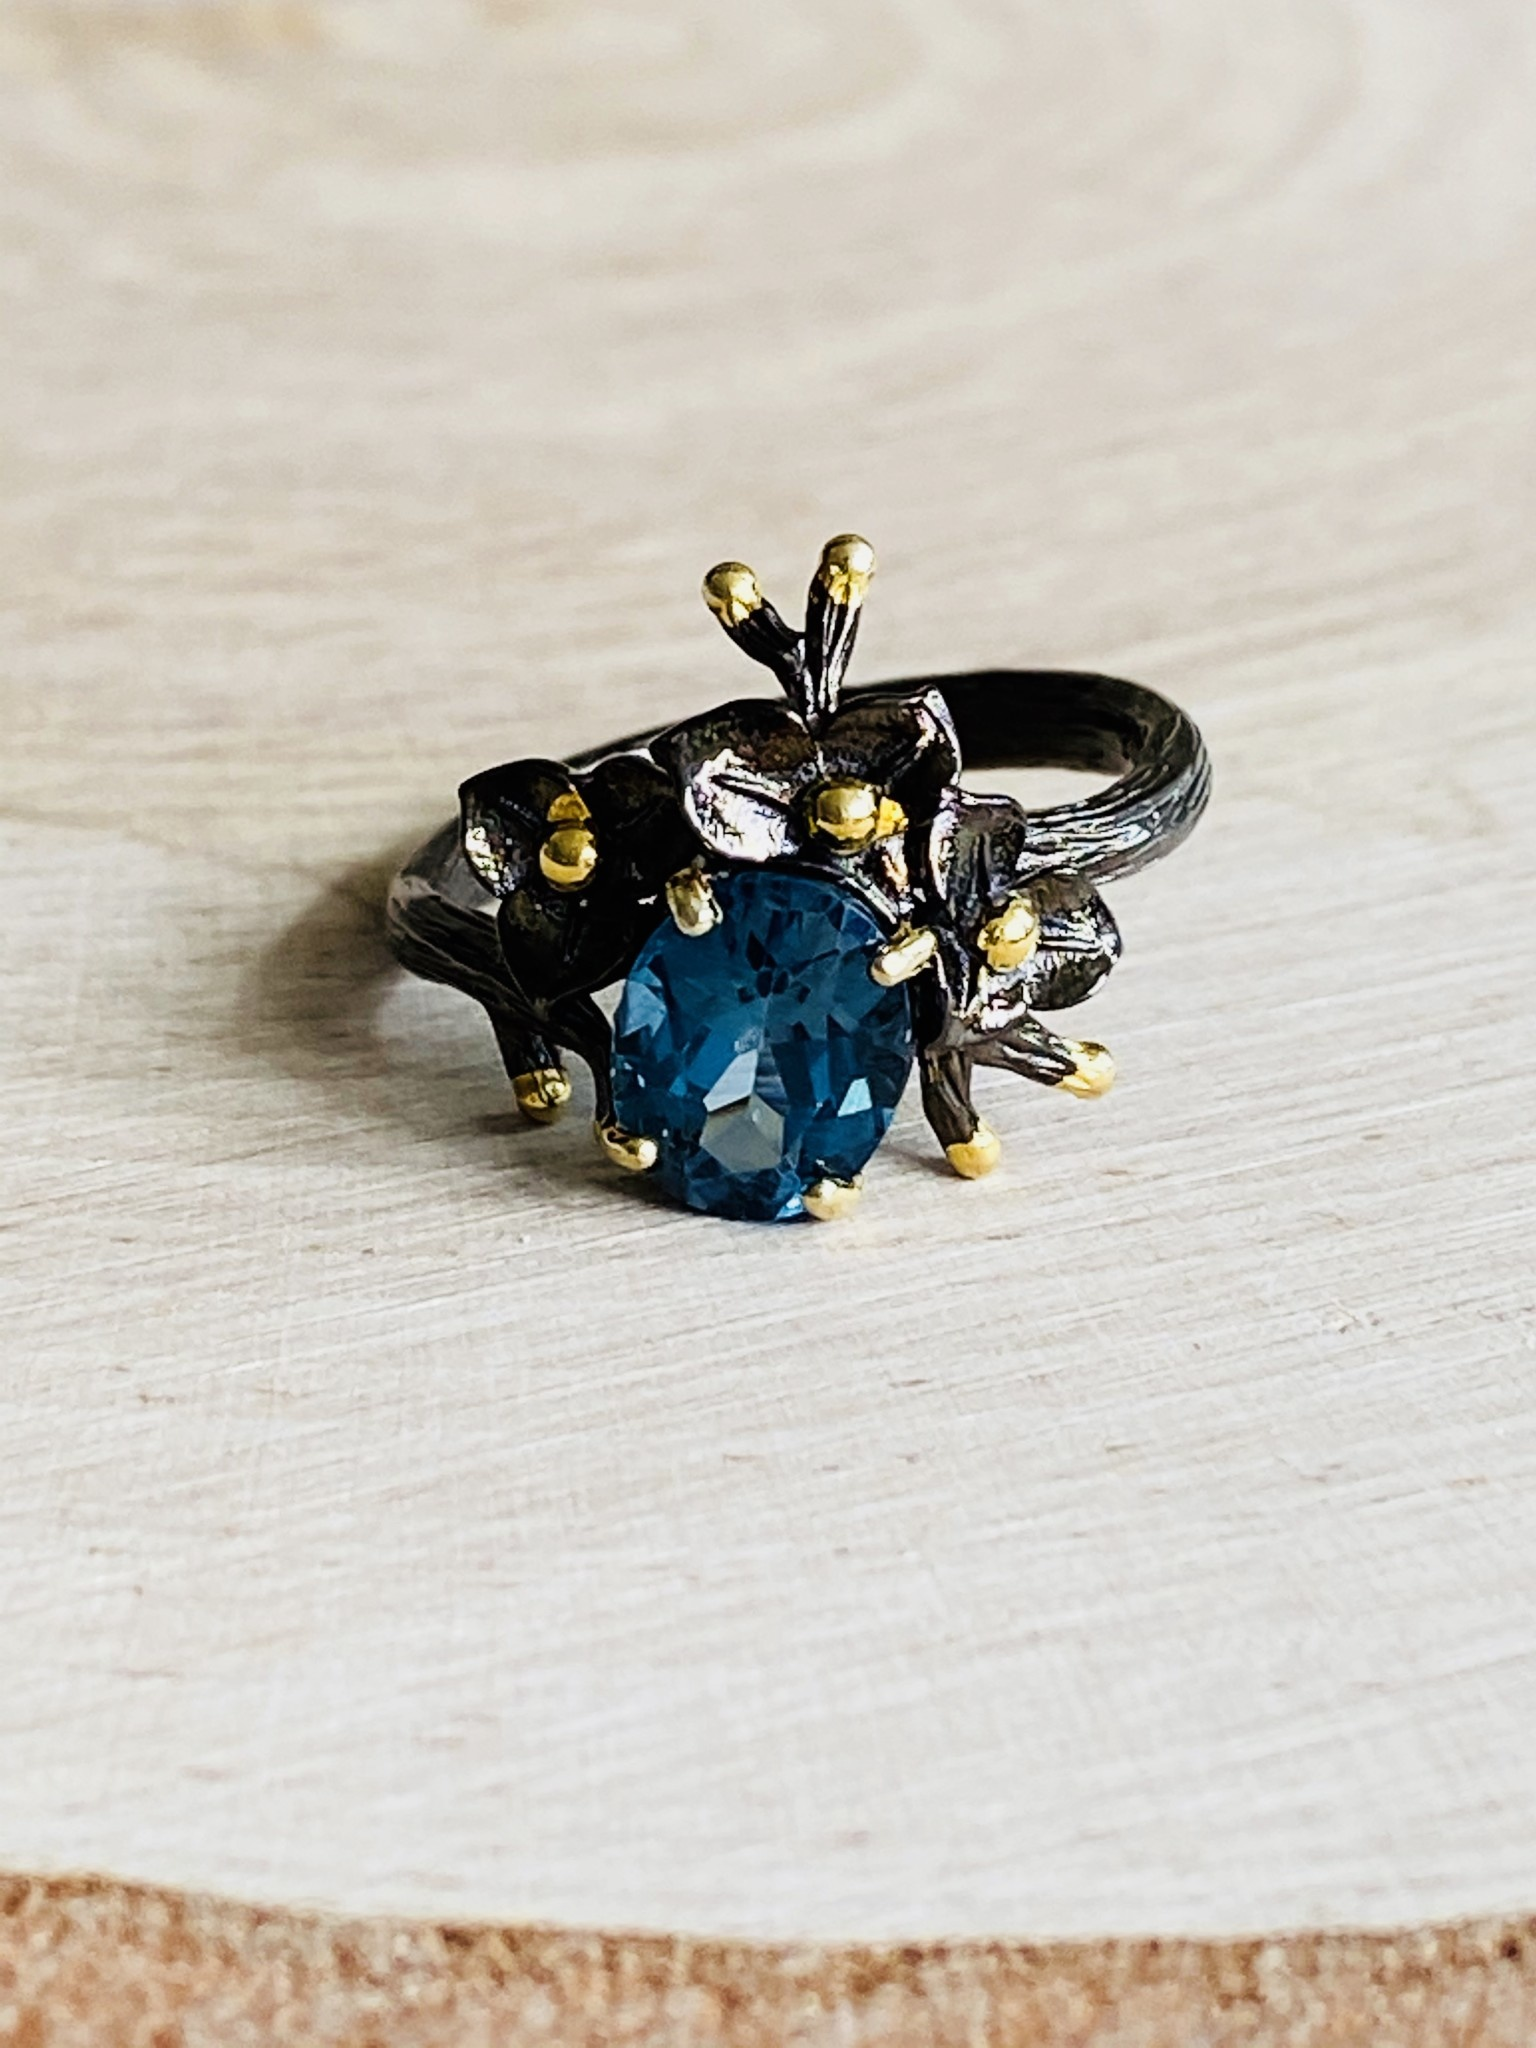 Blue Topaz Flower Crown Ring - Size 8